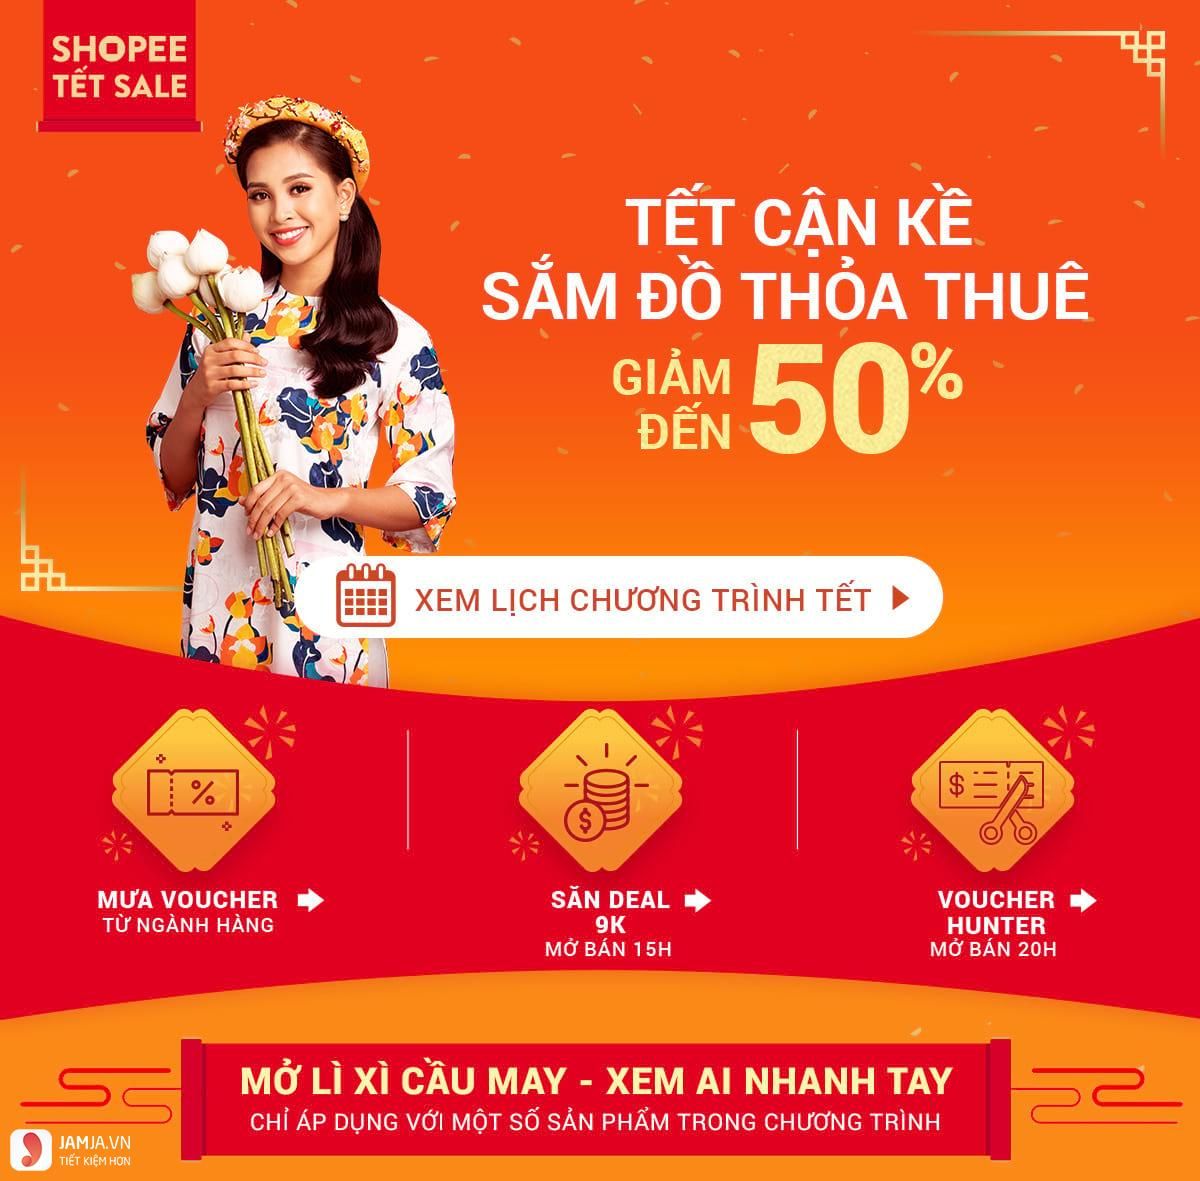 shopee tết sale